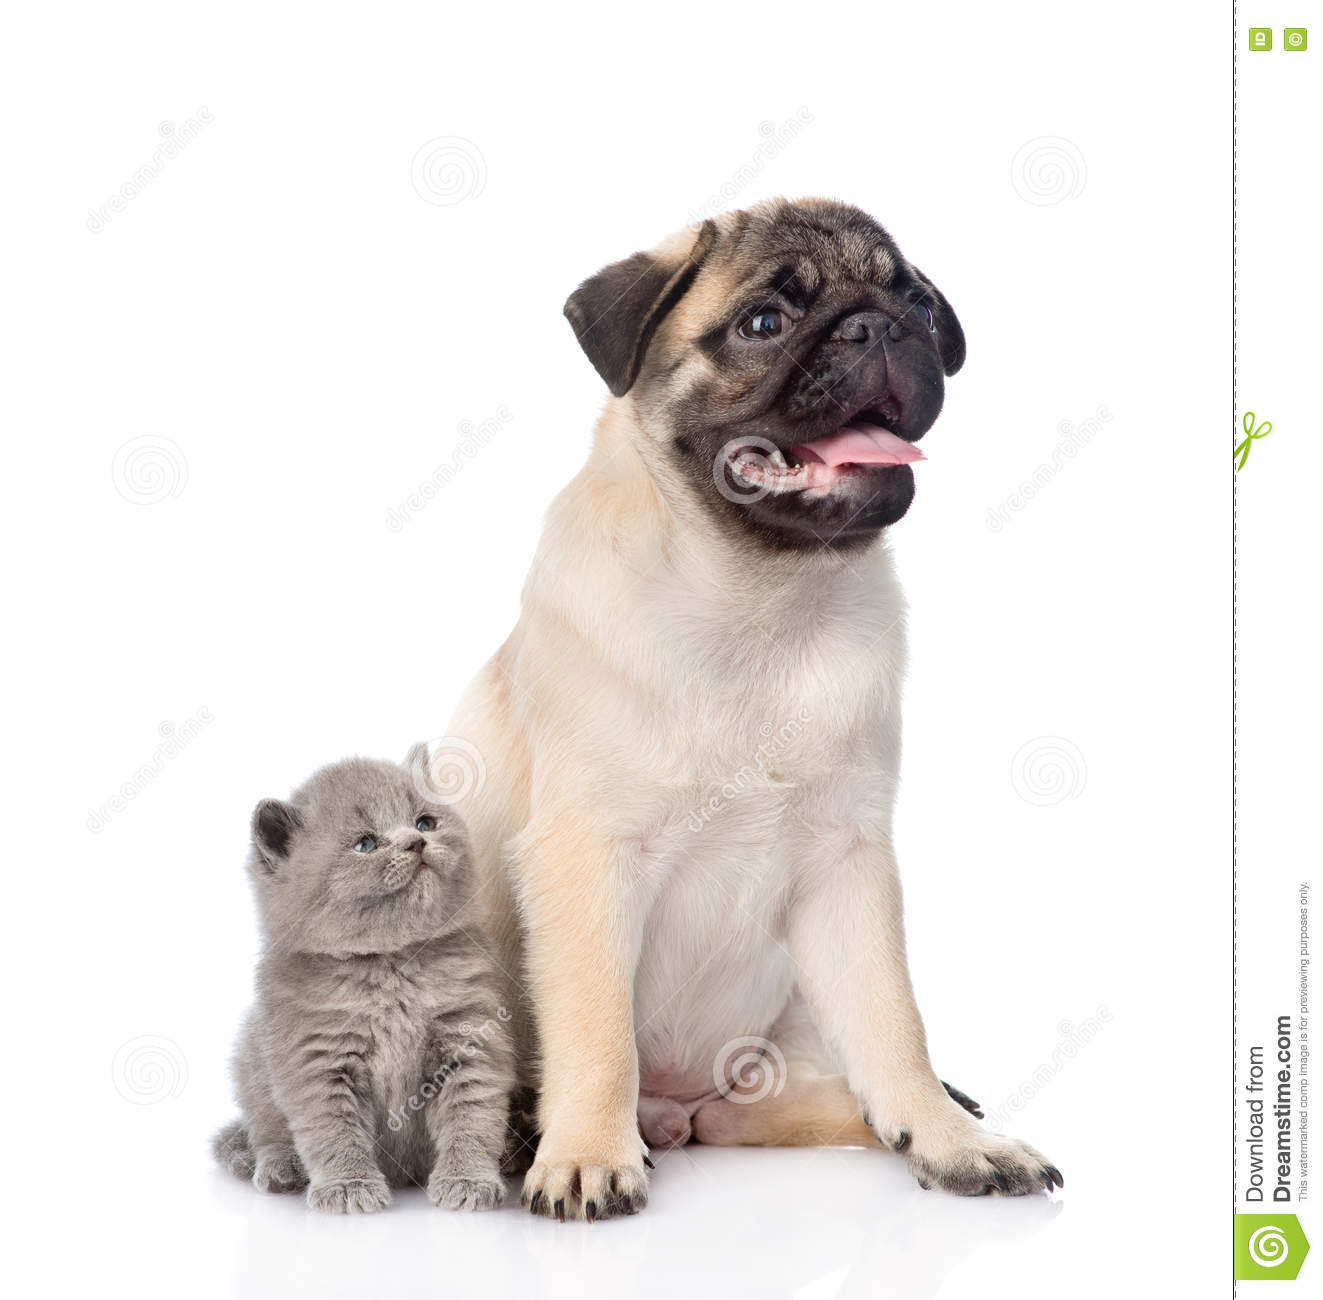 Pug Puppy Sitting With Tiny Scottish Cat Together Isolated On White